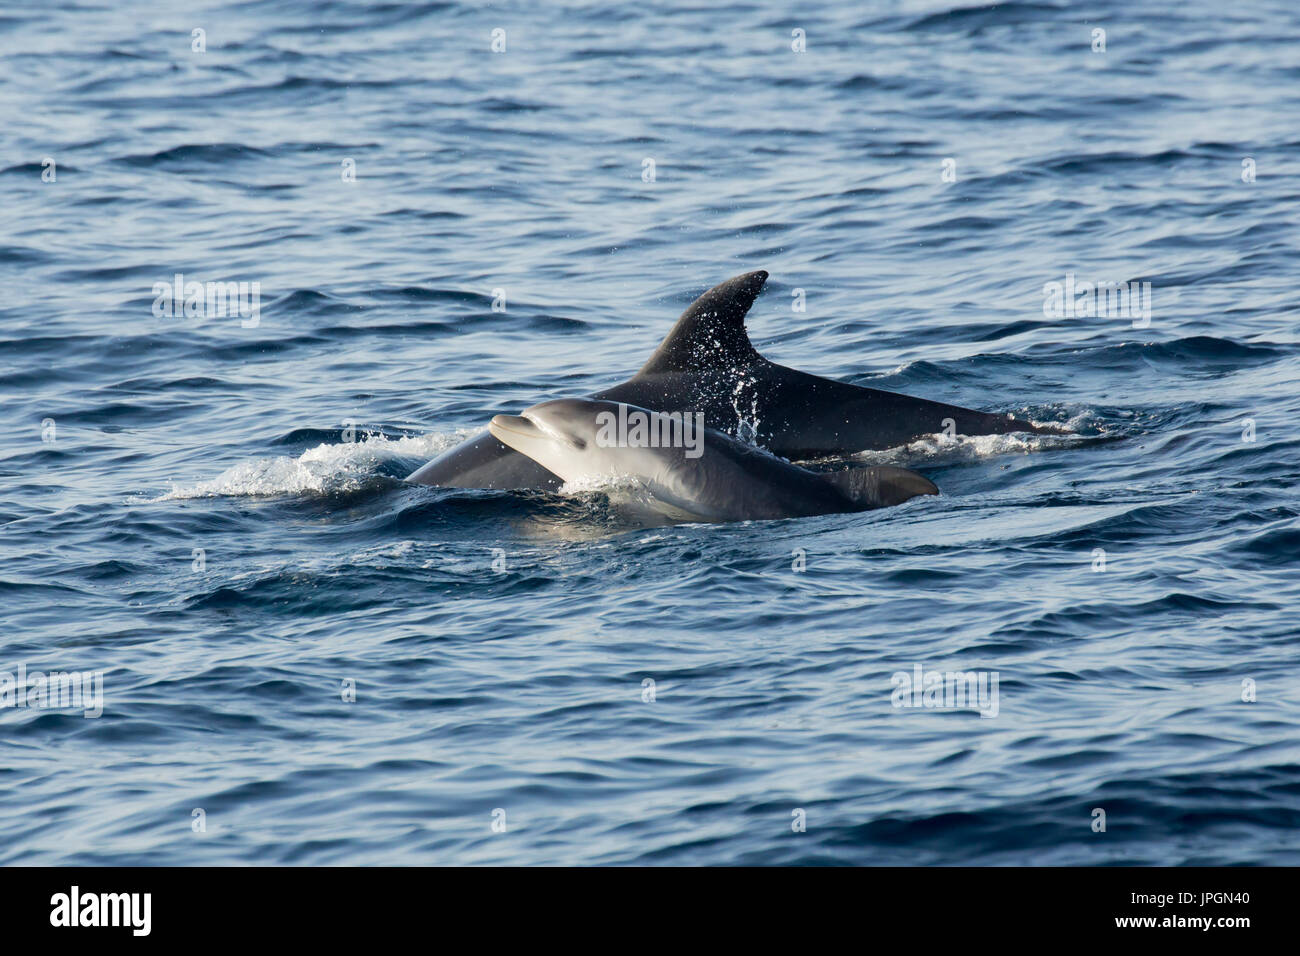 Common Bottlenose Dolphin (Tursiops truncates) mother and baby surfacing in the Strait of Gibraltar - Stock Image